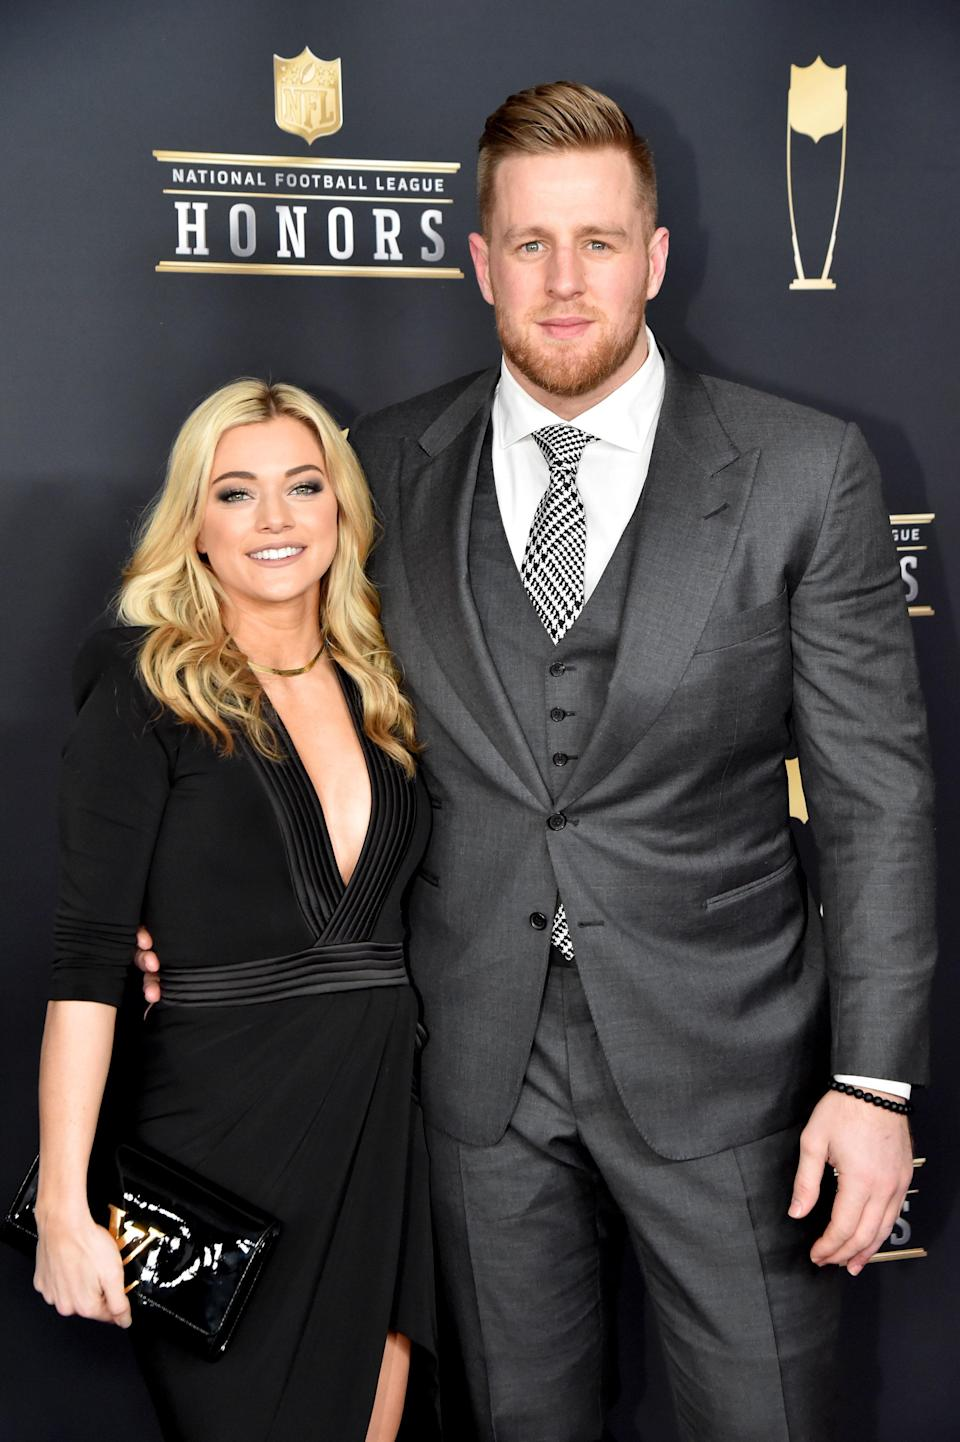 """NFL star (and recent <em>Saturday Night Live</em> host) J.J. Watt married professional soccer player Kealia Ohai in a lavish ceremony in the Bahamas on February 15. Watt <a href=""""https://www.instagram.com/p/B8oRhoLHw7A/"""" rel=""""nofollow noopener"""" target=""""_blank"""" data-ylk=""""slk:shared some of the photos on Instagram"""" class=""""link rapid-noclick-resp"""">shared some of the photos on Instagram</a> with the caption, """"Best day of my life. Without question. ❤️💙."""" The couple dated for years and got engaged in May 2019."""